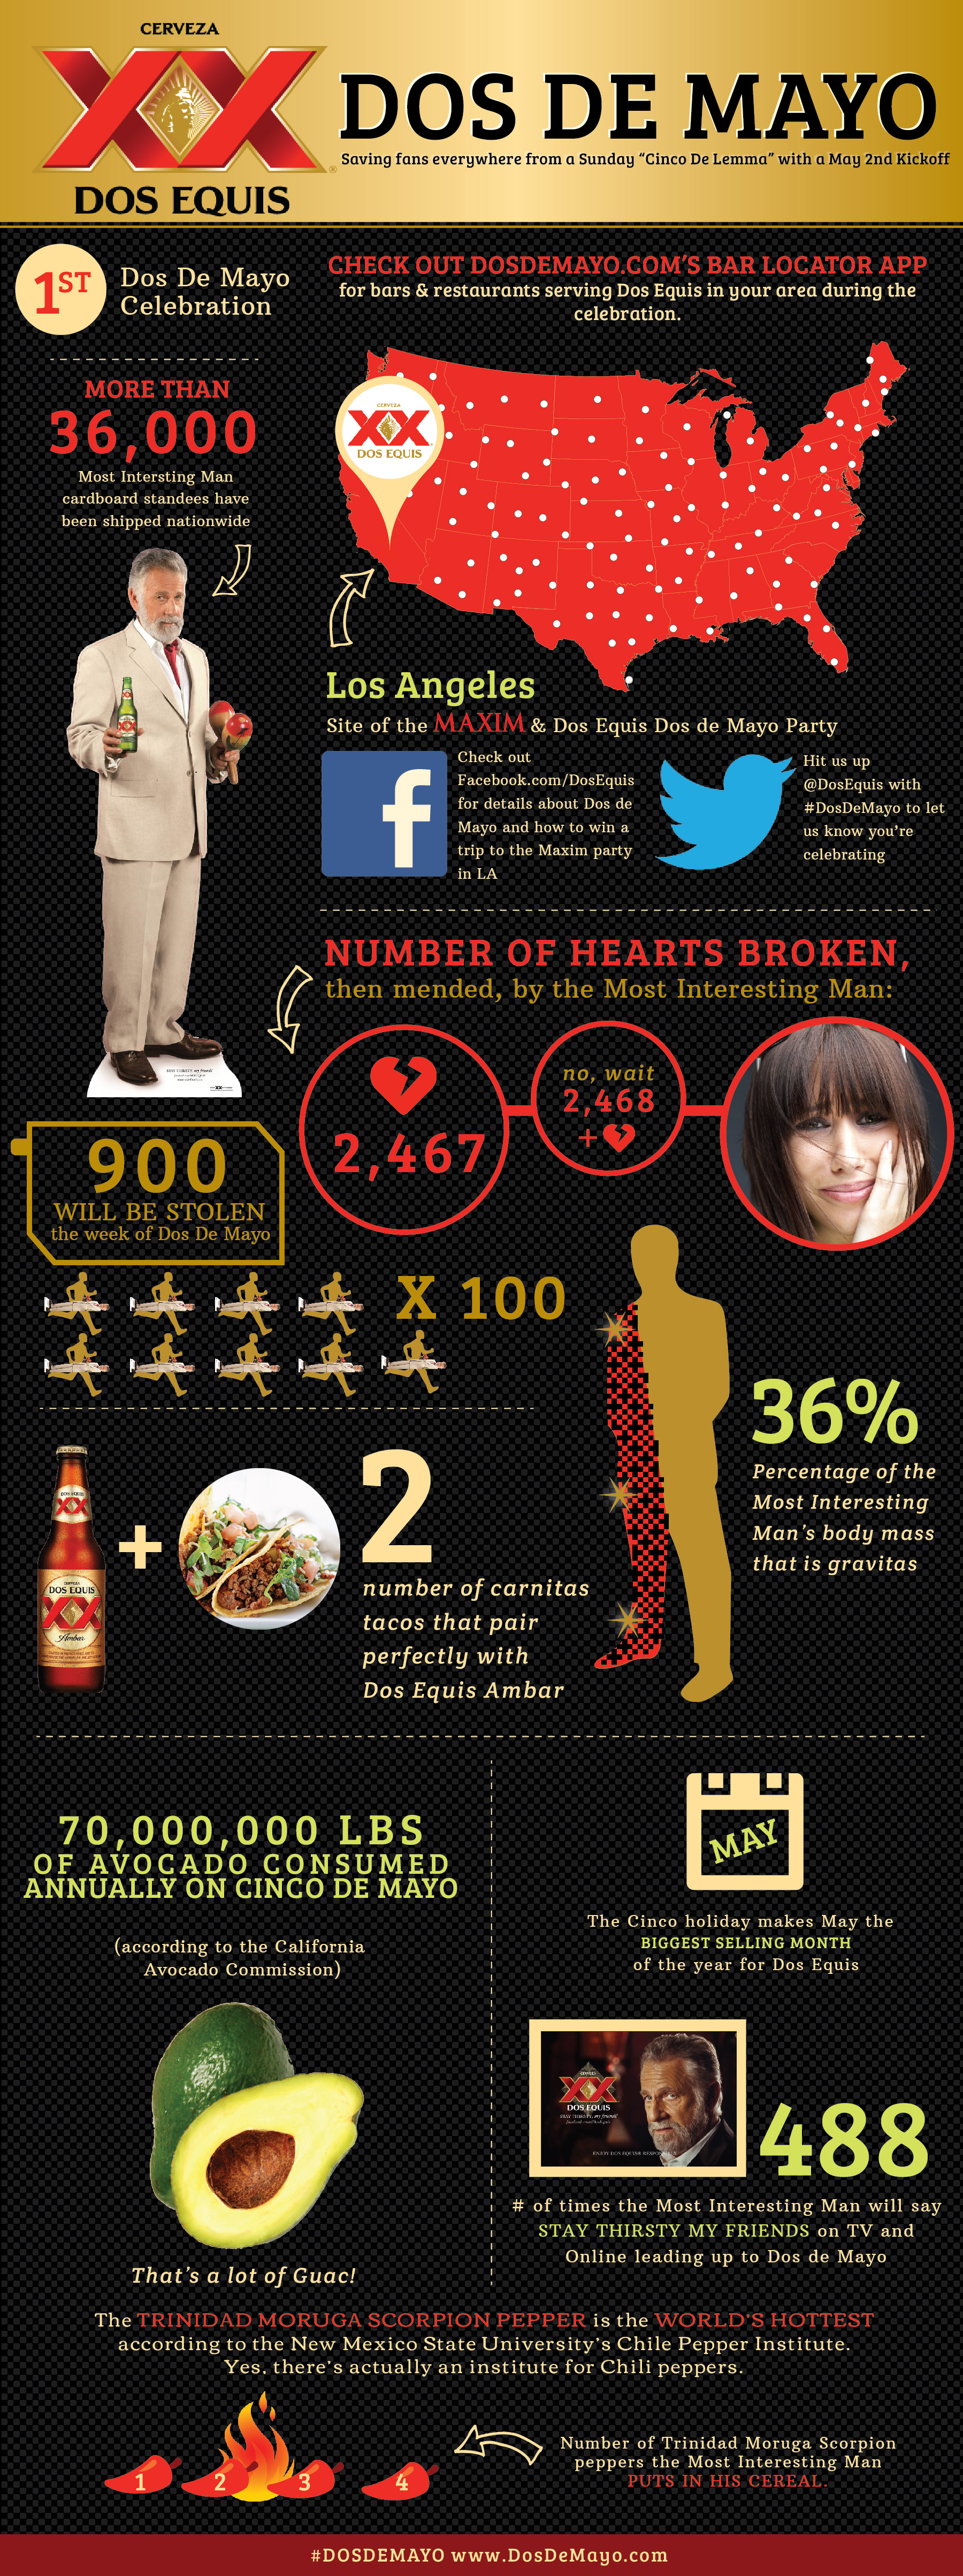 Dos Equis Dos De Mayo Infographic Interesting Man